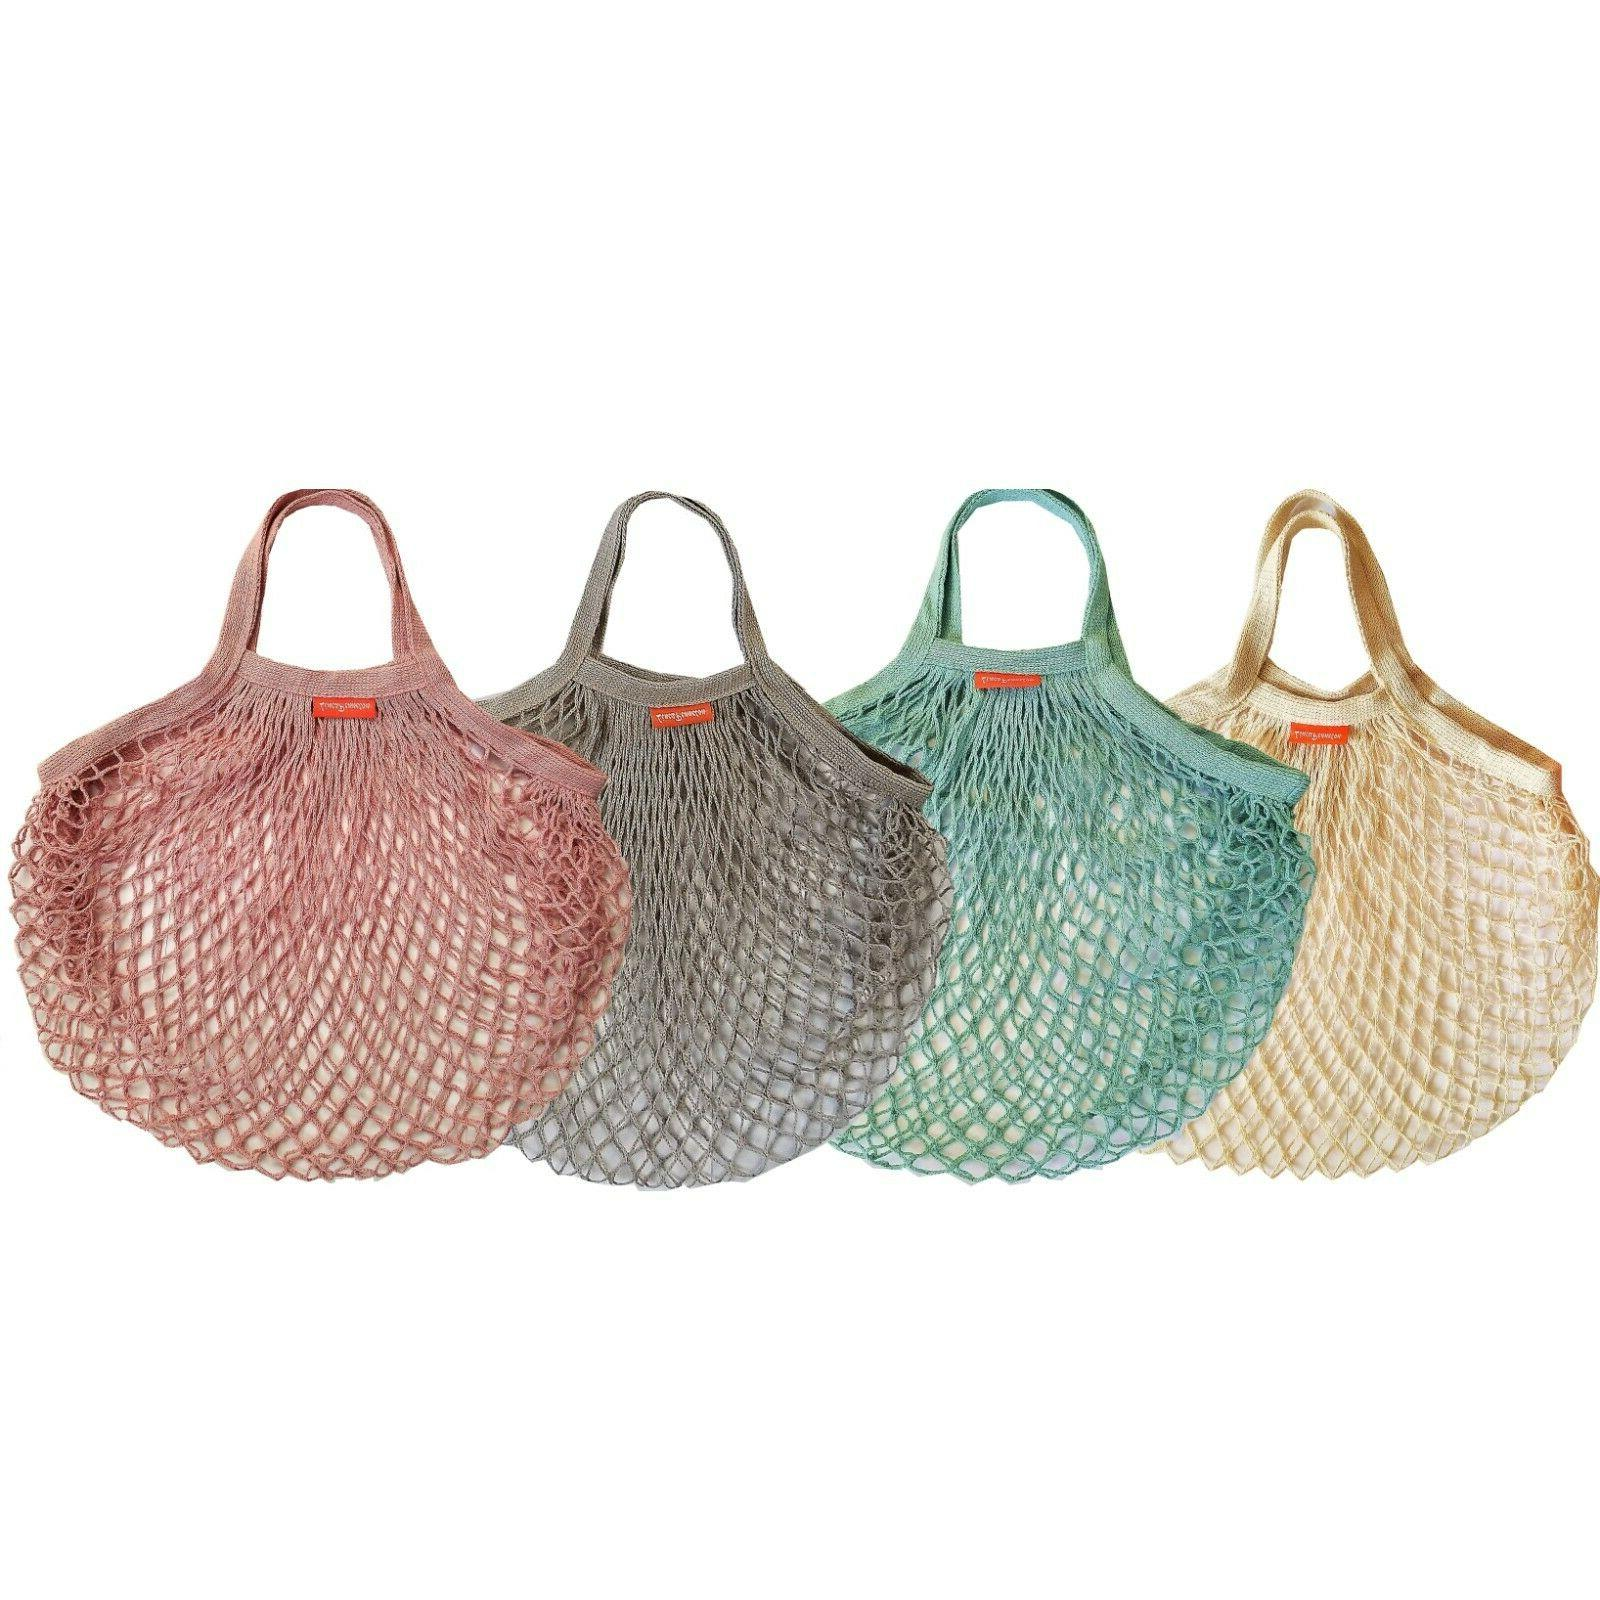 Reusable Mesh Cotton Bags Shopping